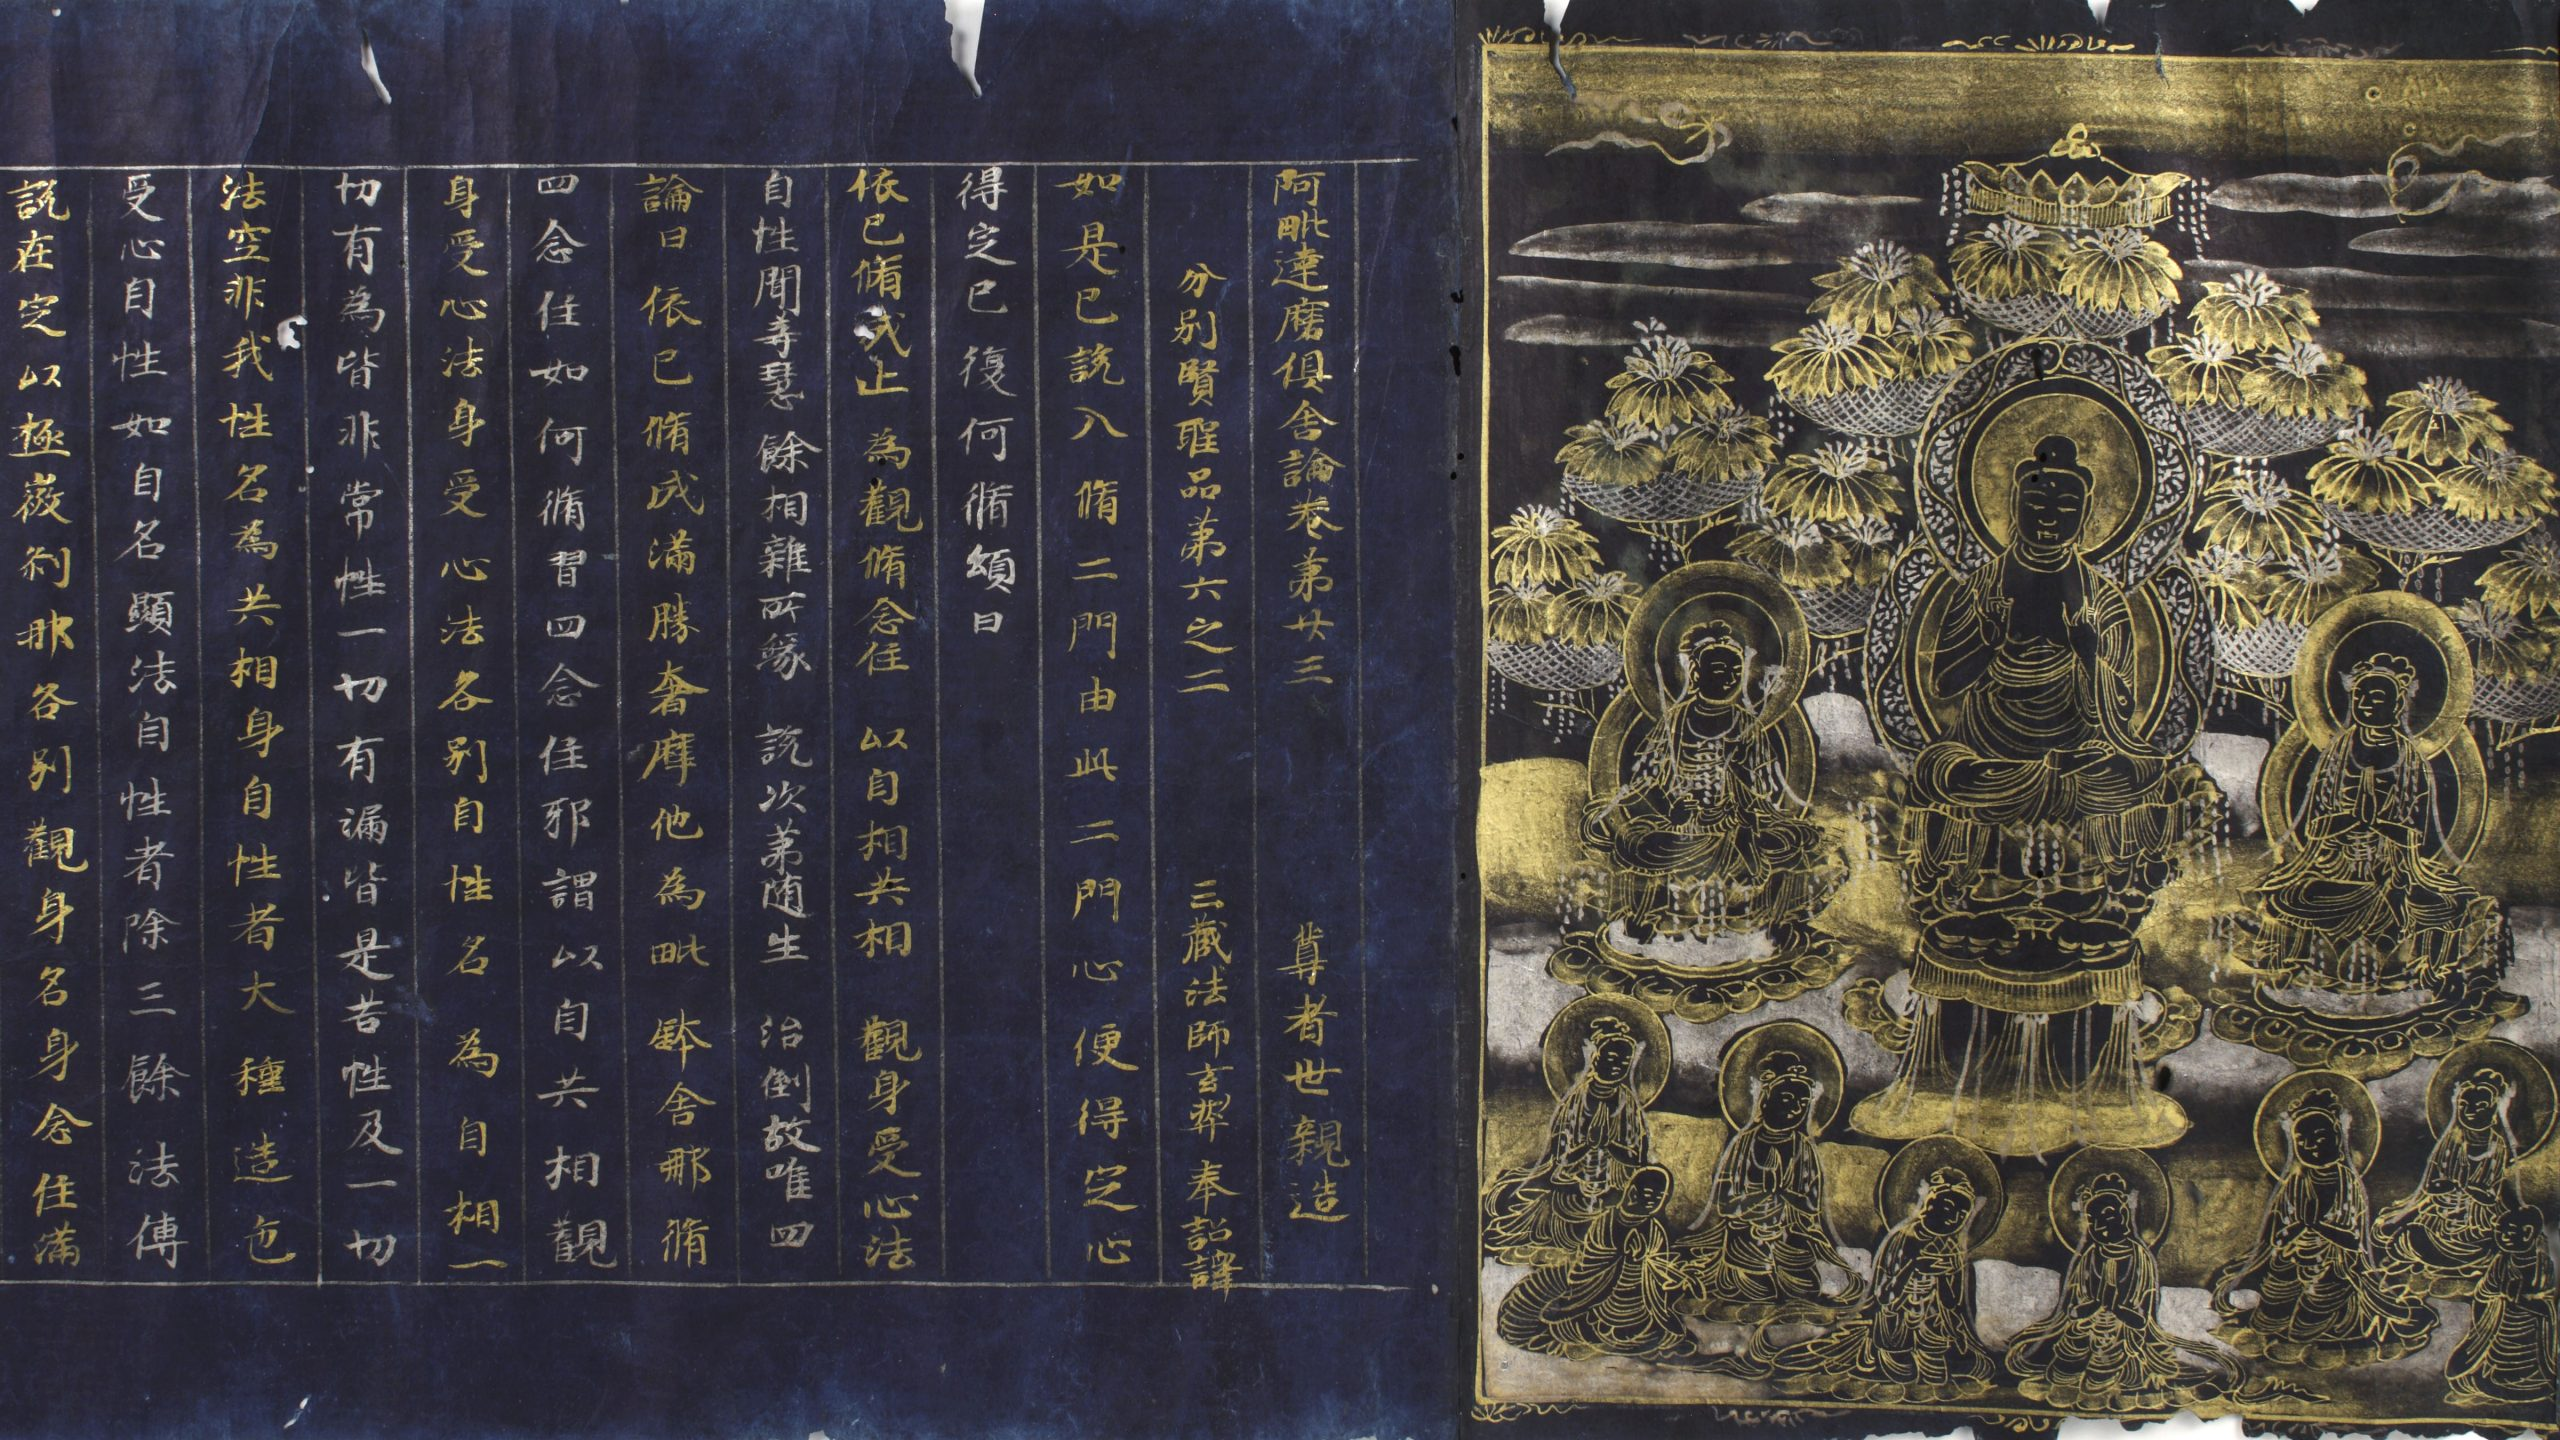 <br /> <b>Warning</b>:  Illegal string offset 'alt' in <b>/import/home04Web1/gmus/www/pub/wp-content/themes/hestia/template-parts/content-single.php</b> on line <b>41</b><br /> h